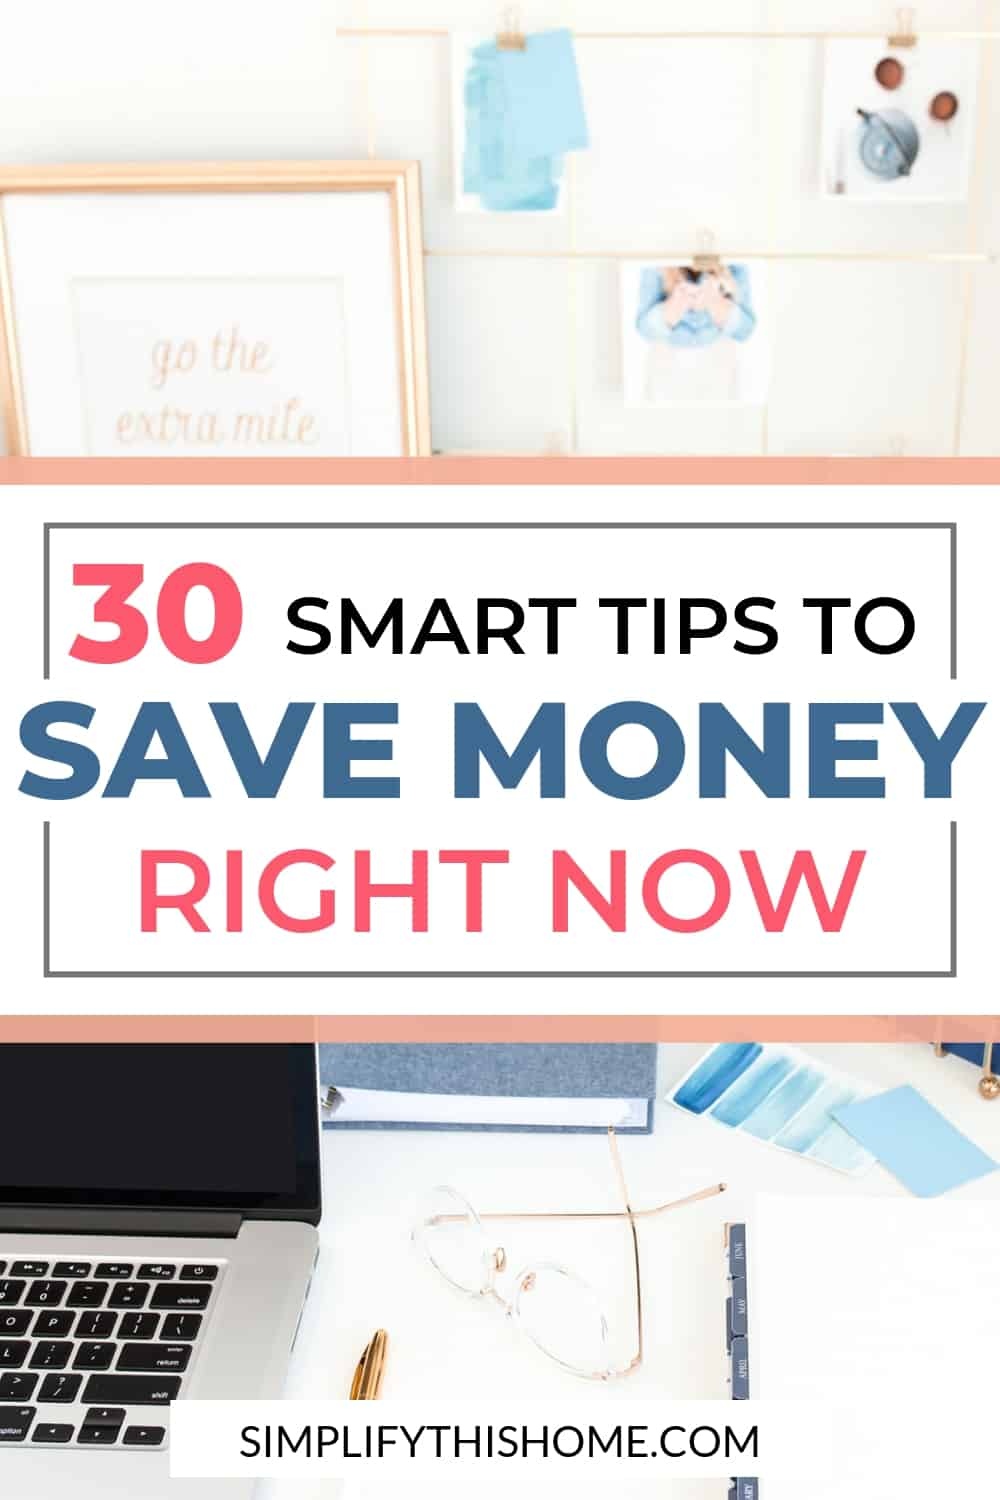 Smart tips to save money right now